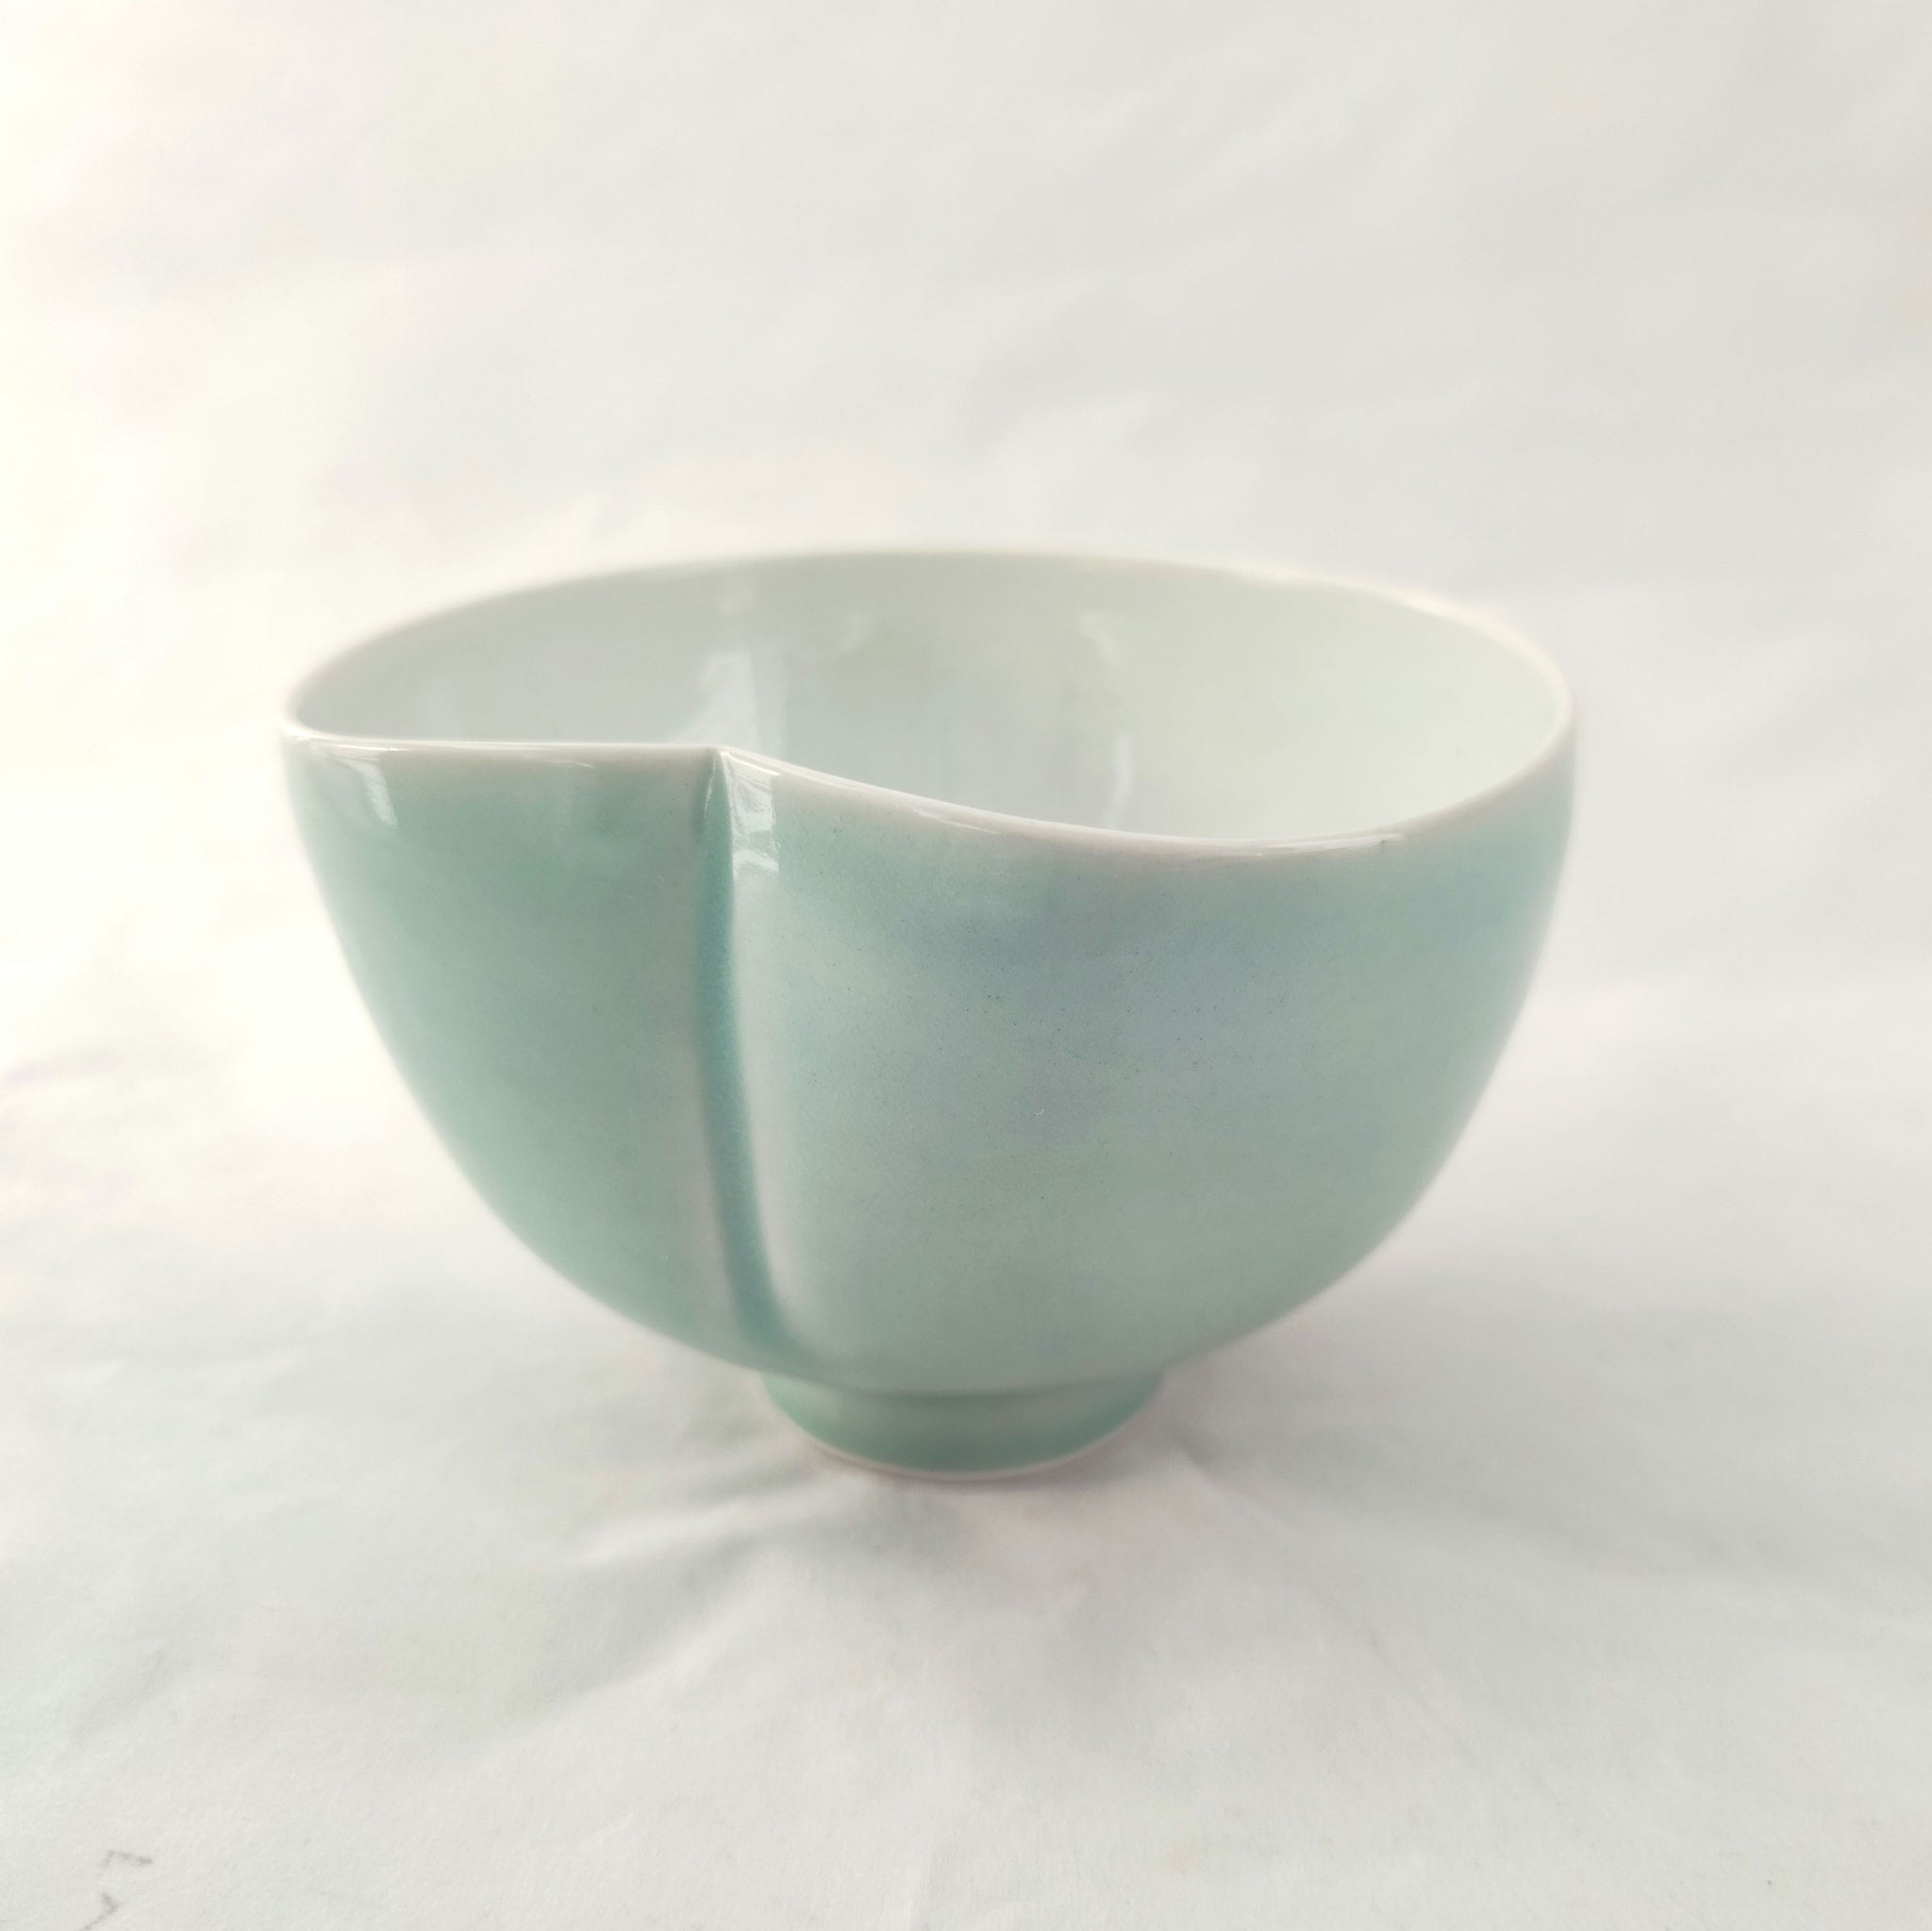 Porcelain Heart/Lily Pad Shaped Bowl